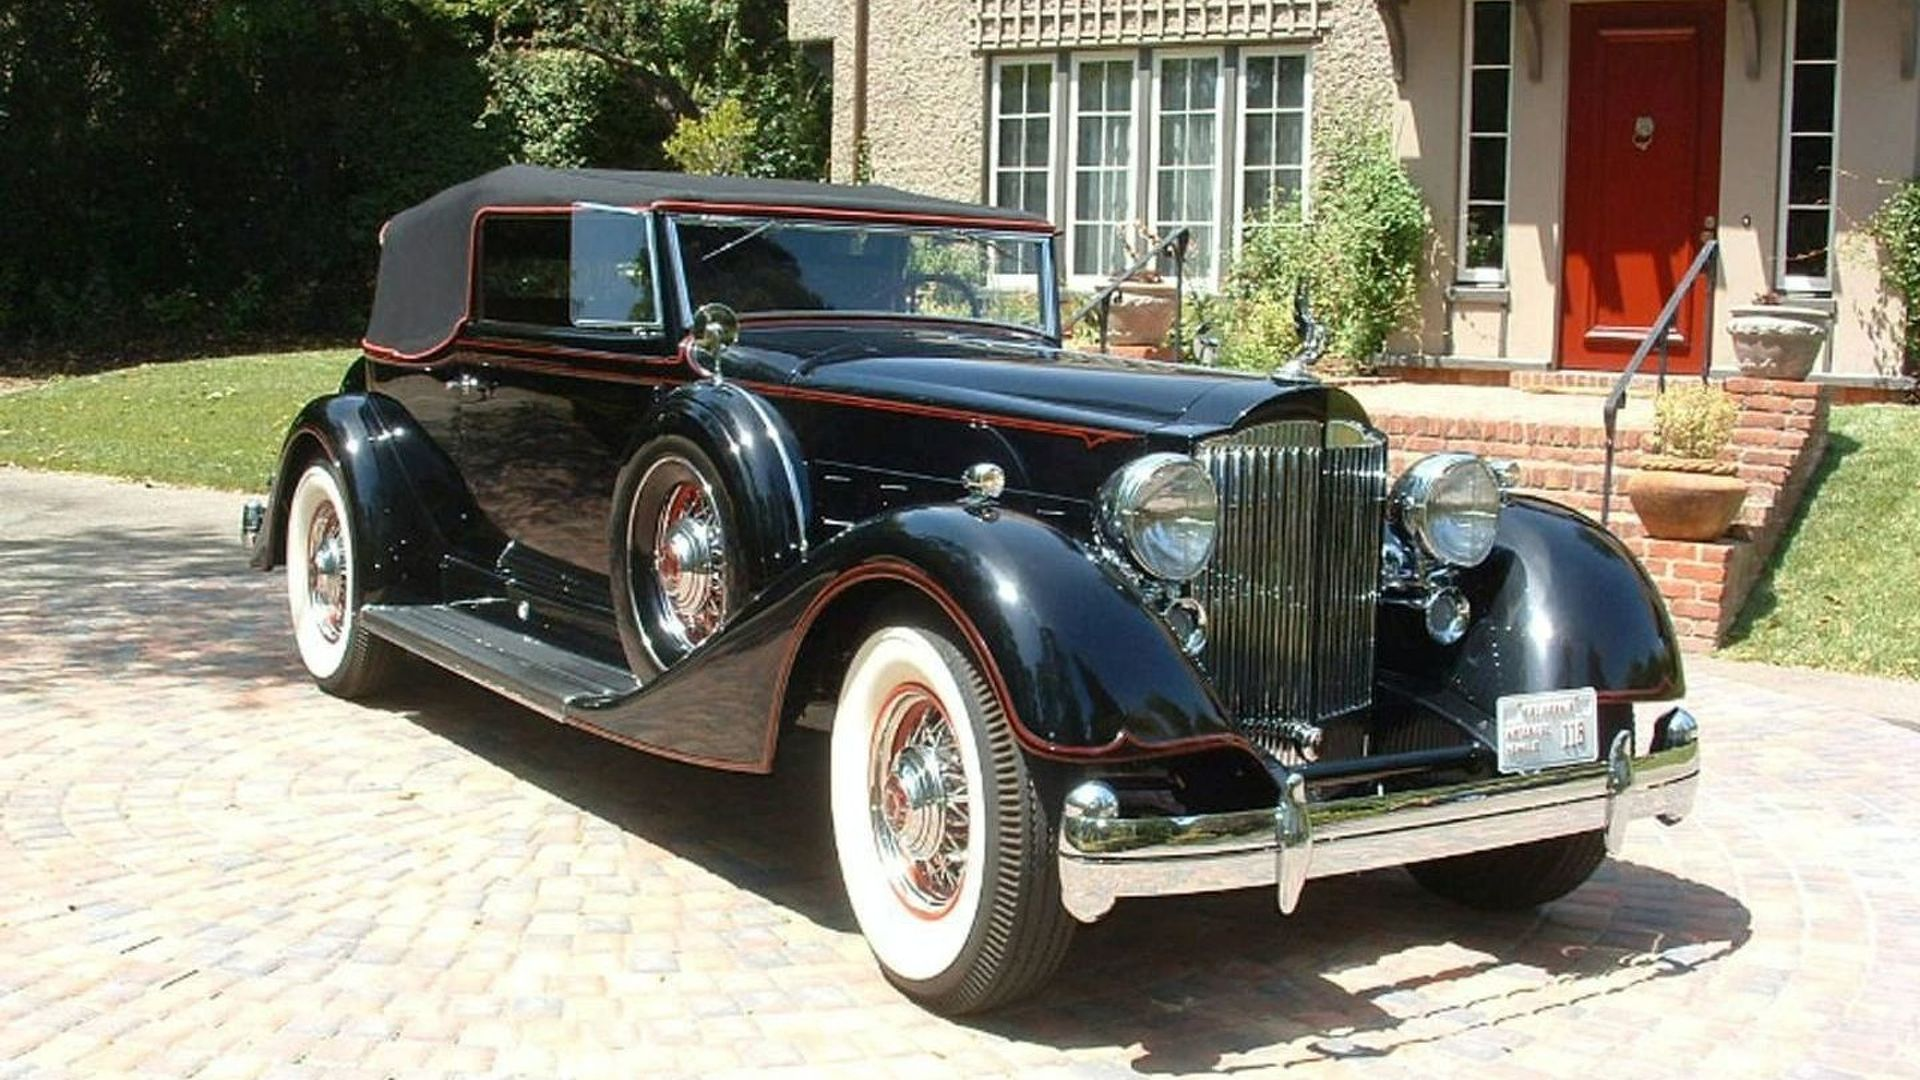 Retired Police Cars For Sale >> 1934 Packard V12 Convertible Victoria to Return to Pebble Beach